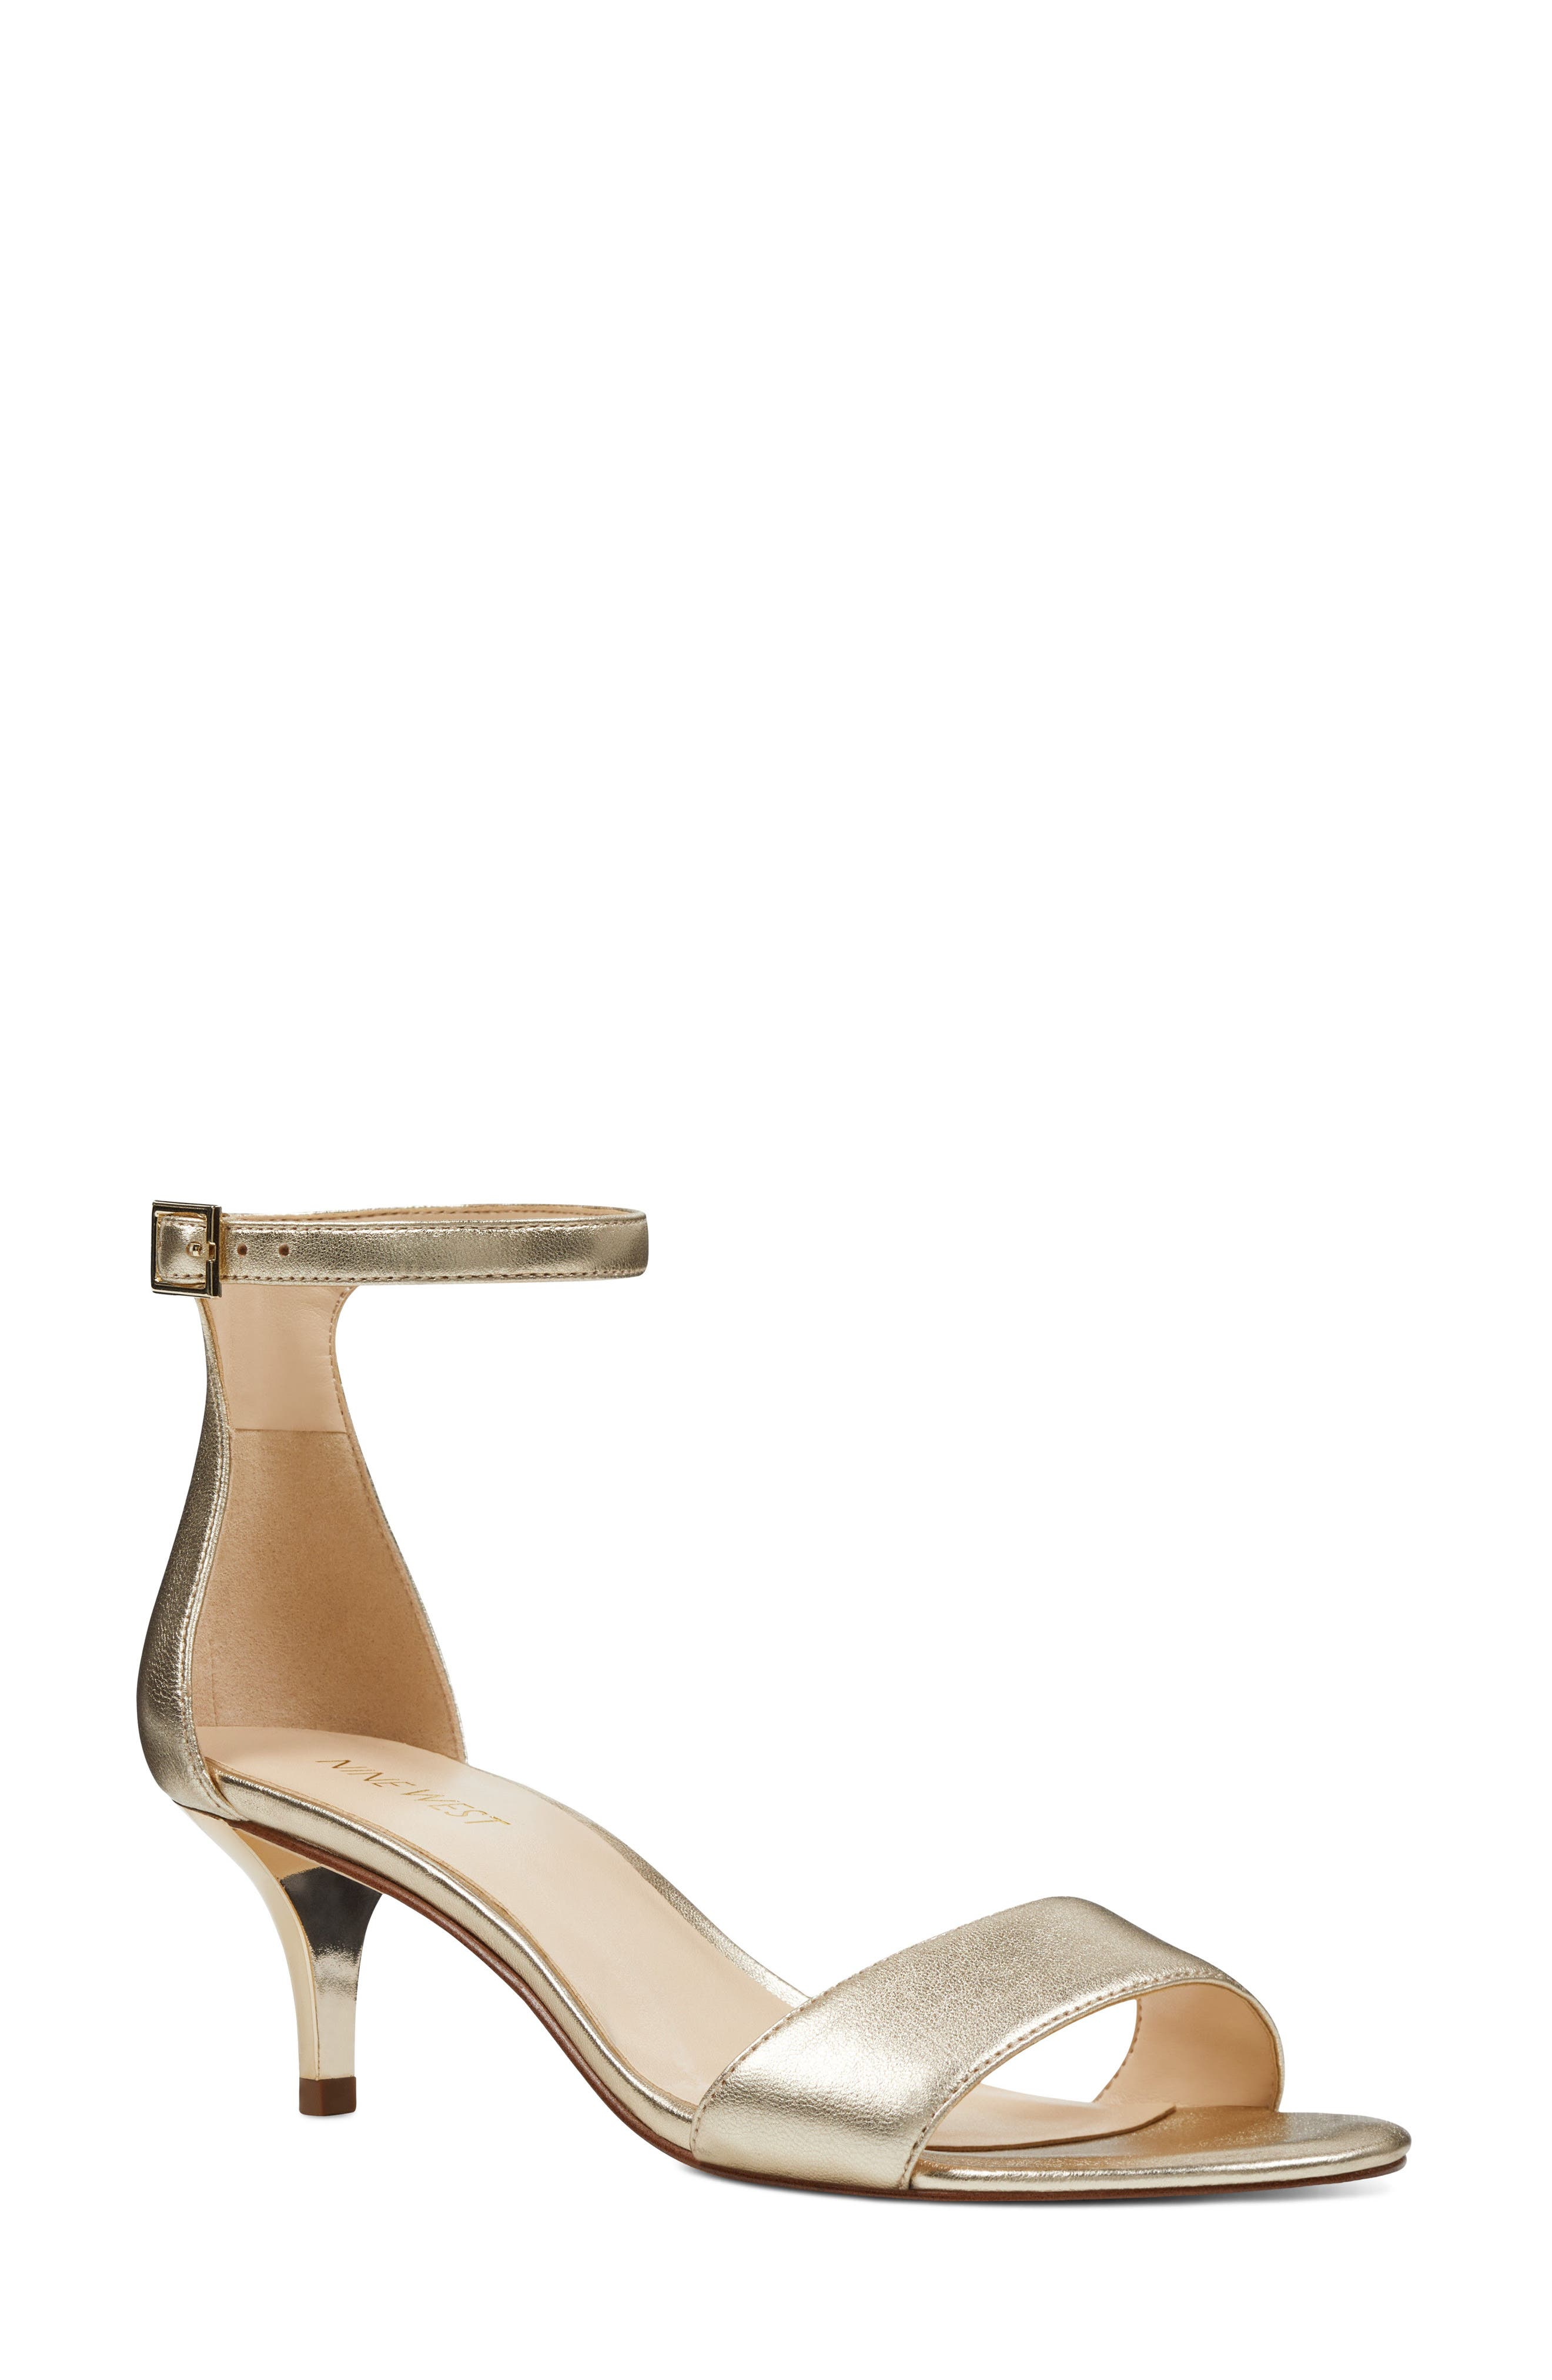 'Leisa' Ankle Strap Sandal,                         Main,                         color, 711